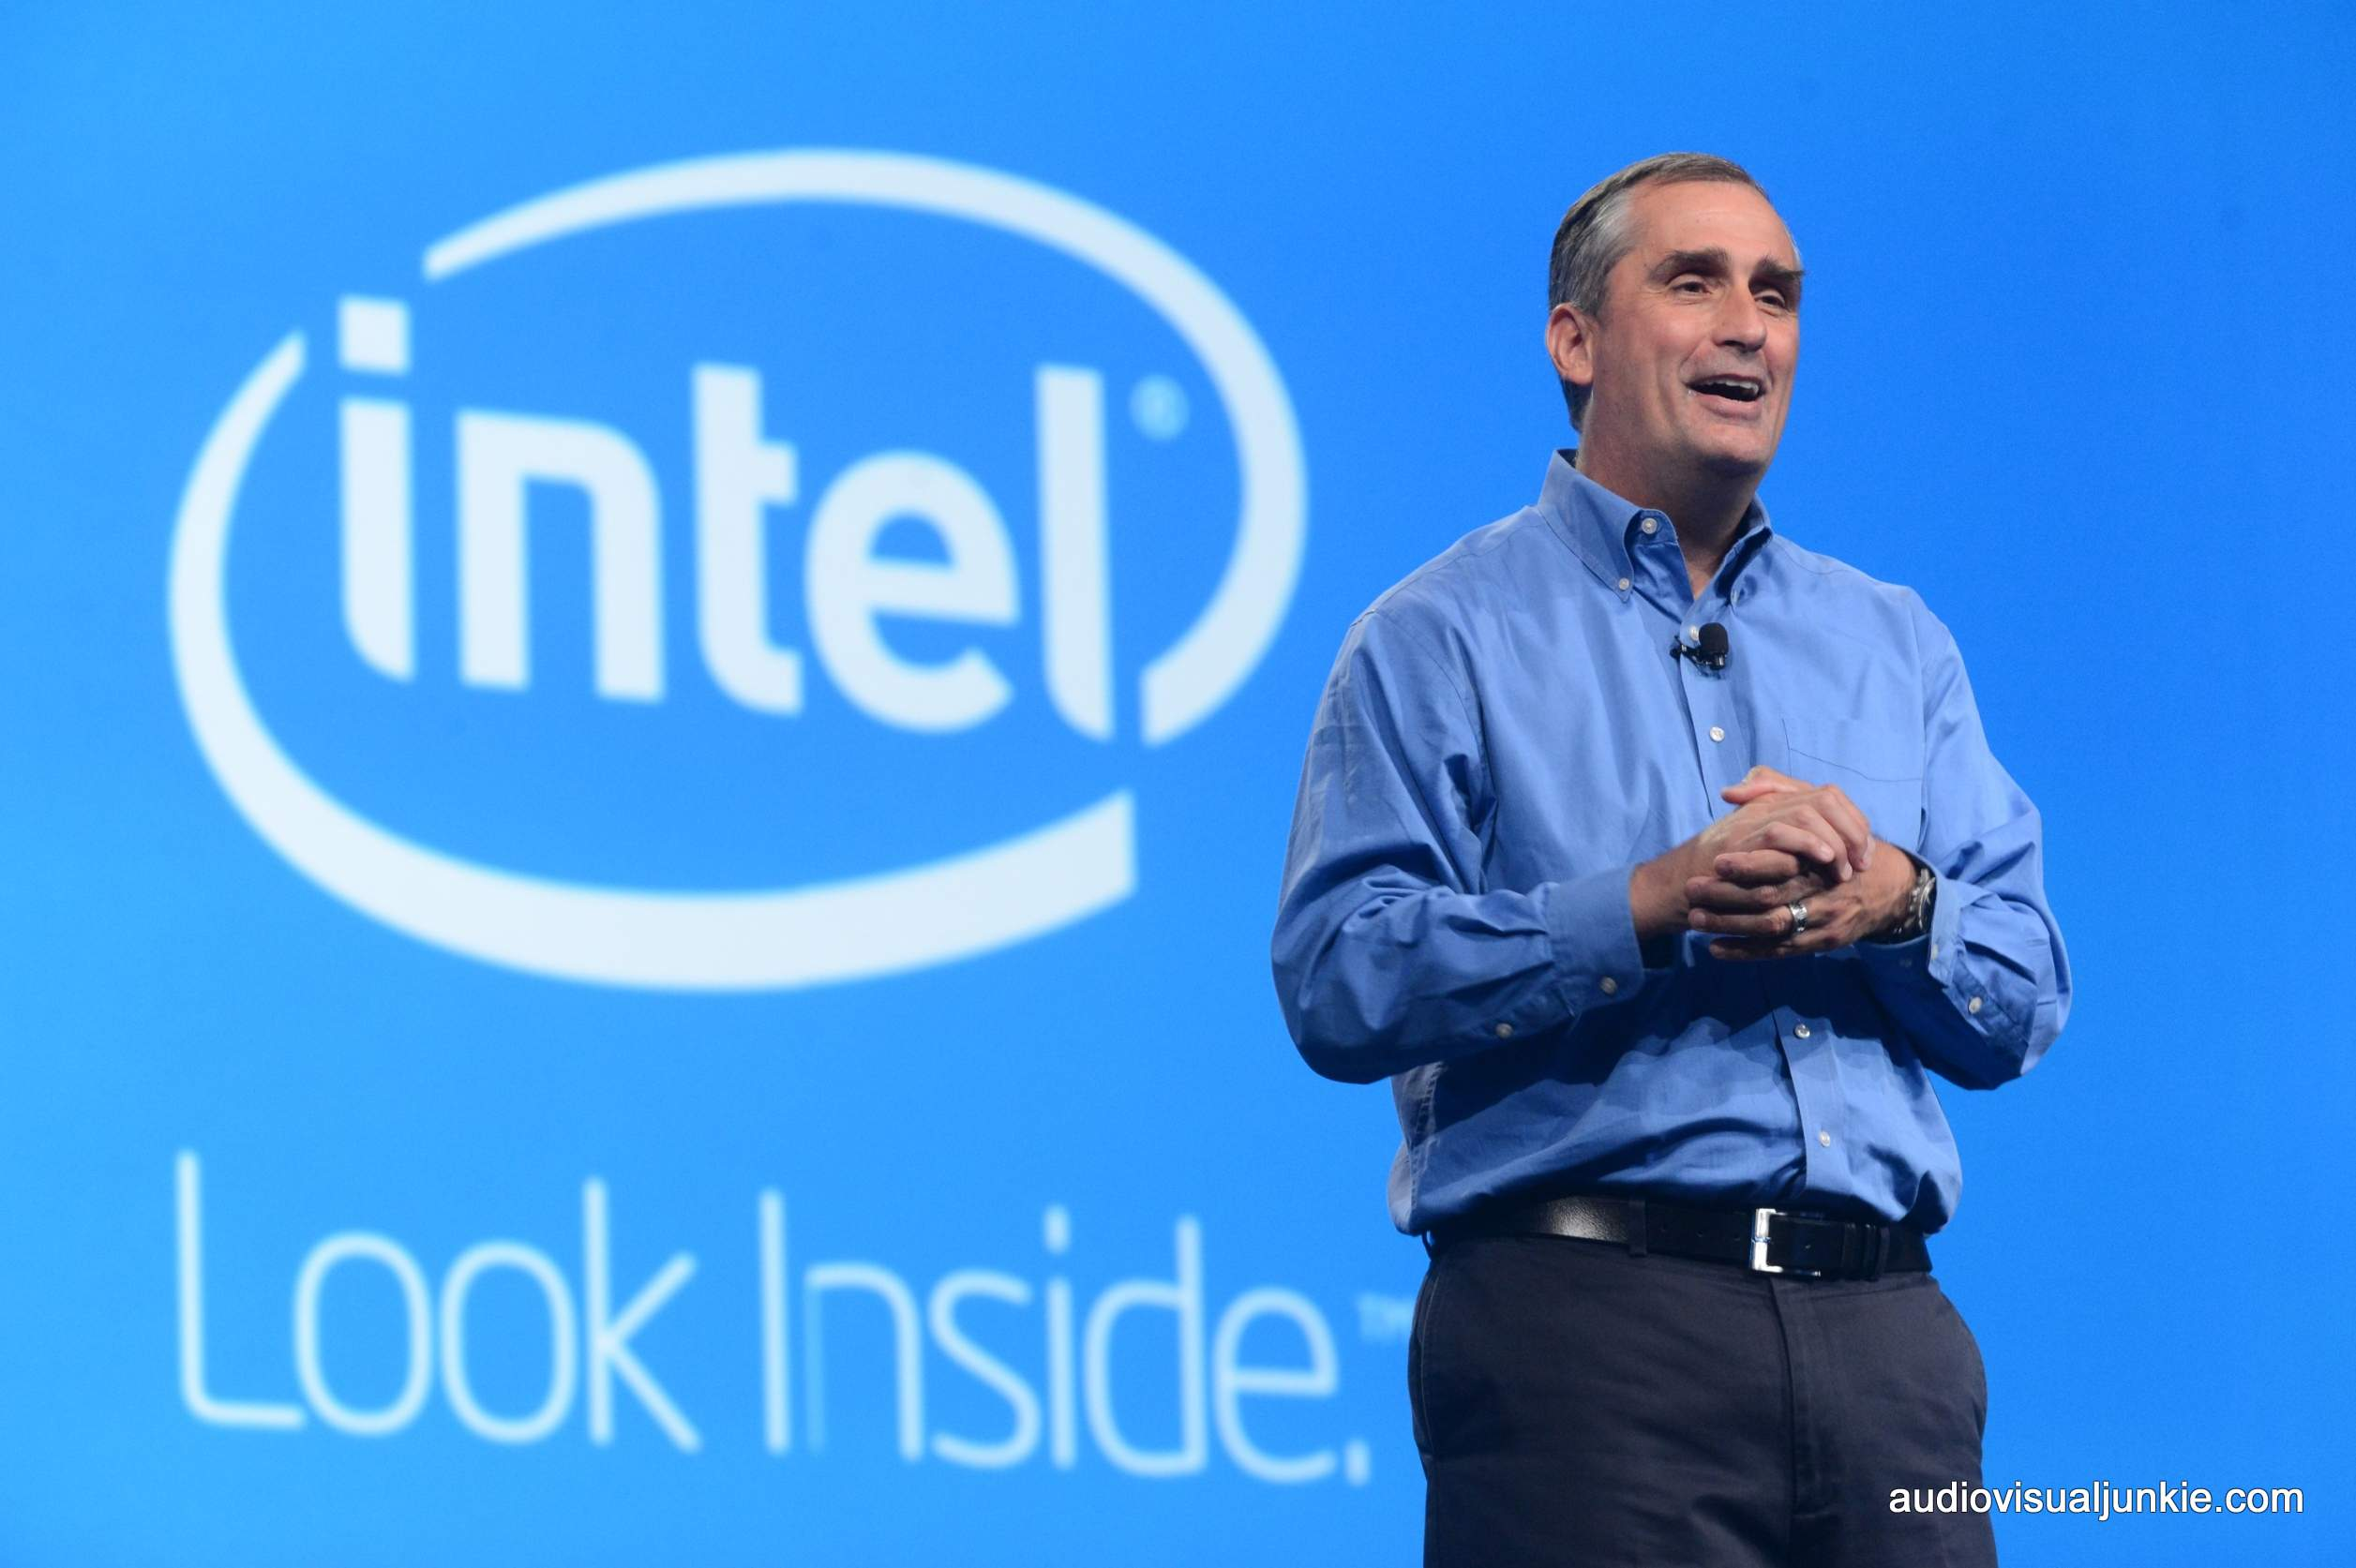 http://corporate-executives.com/wp-content/uploads/2015/10/Intel-CEO-Brian-Krzanich-delivers-his-keynote-Mobilizing-Intel-at-the-Intel-Developer-Forum-in-San-Francisco..jpg